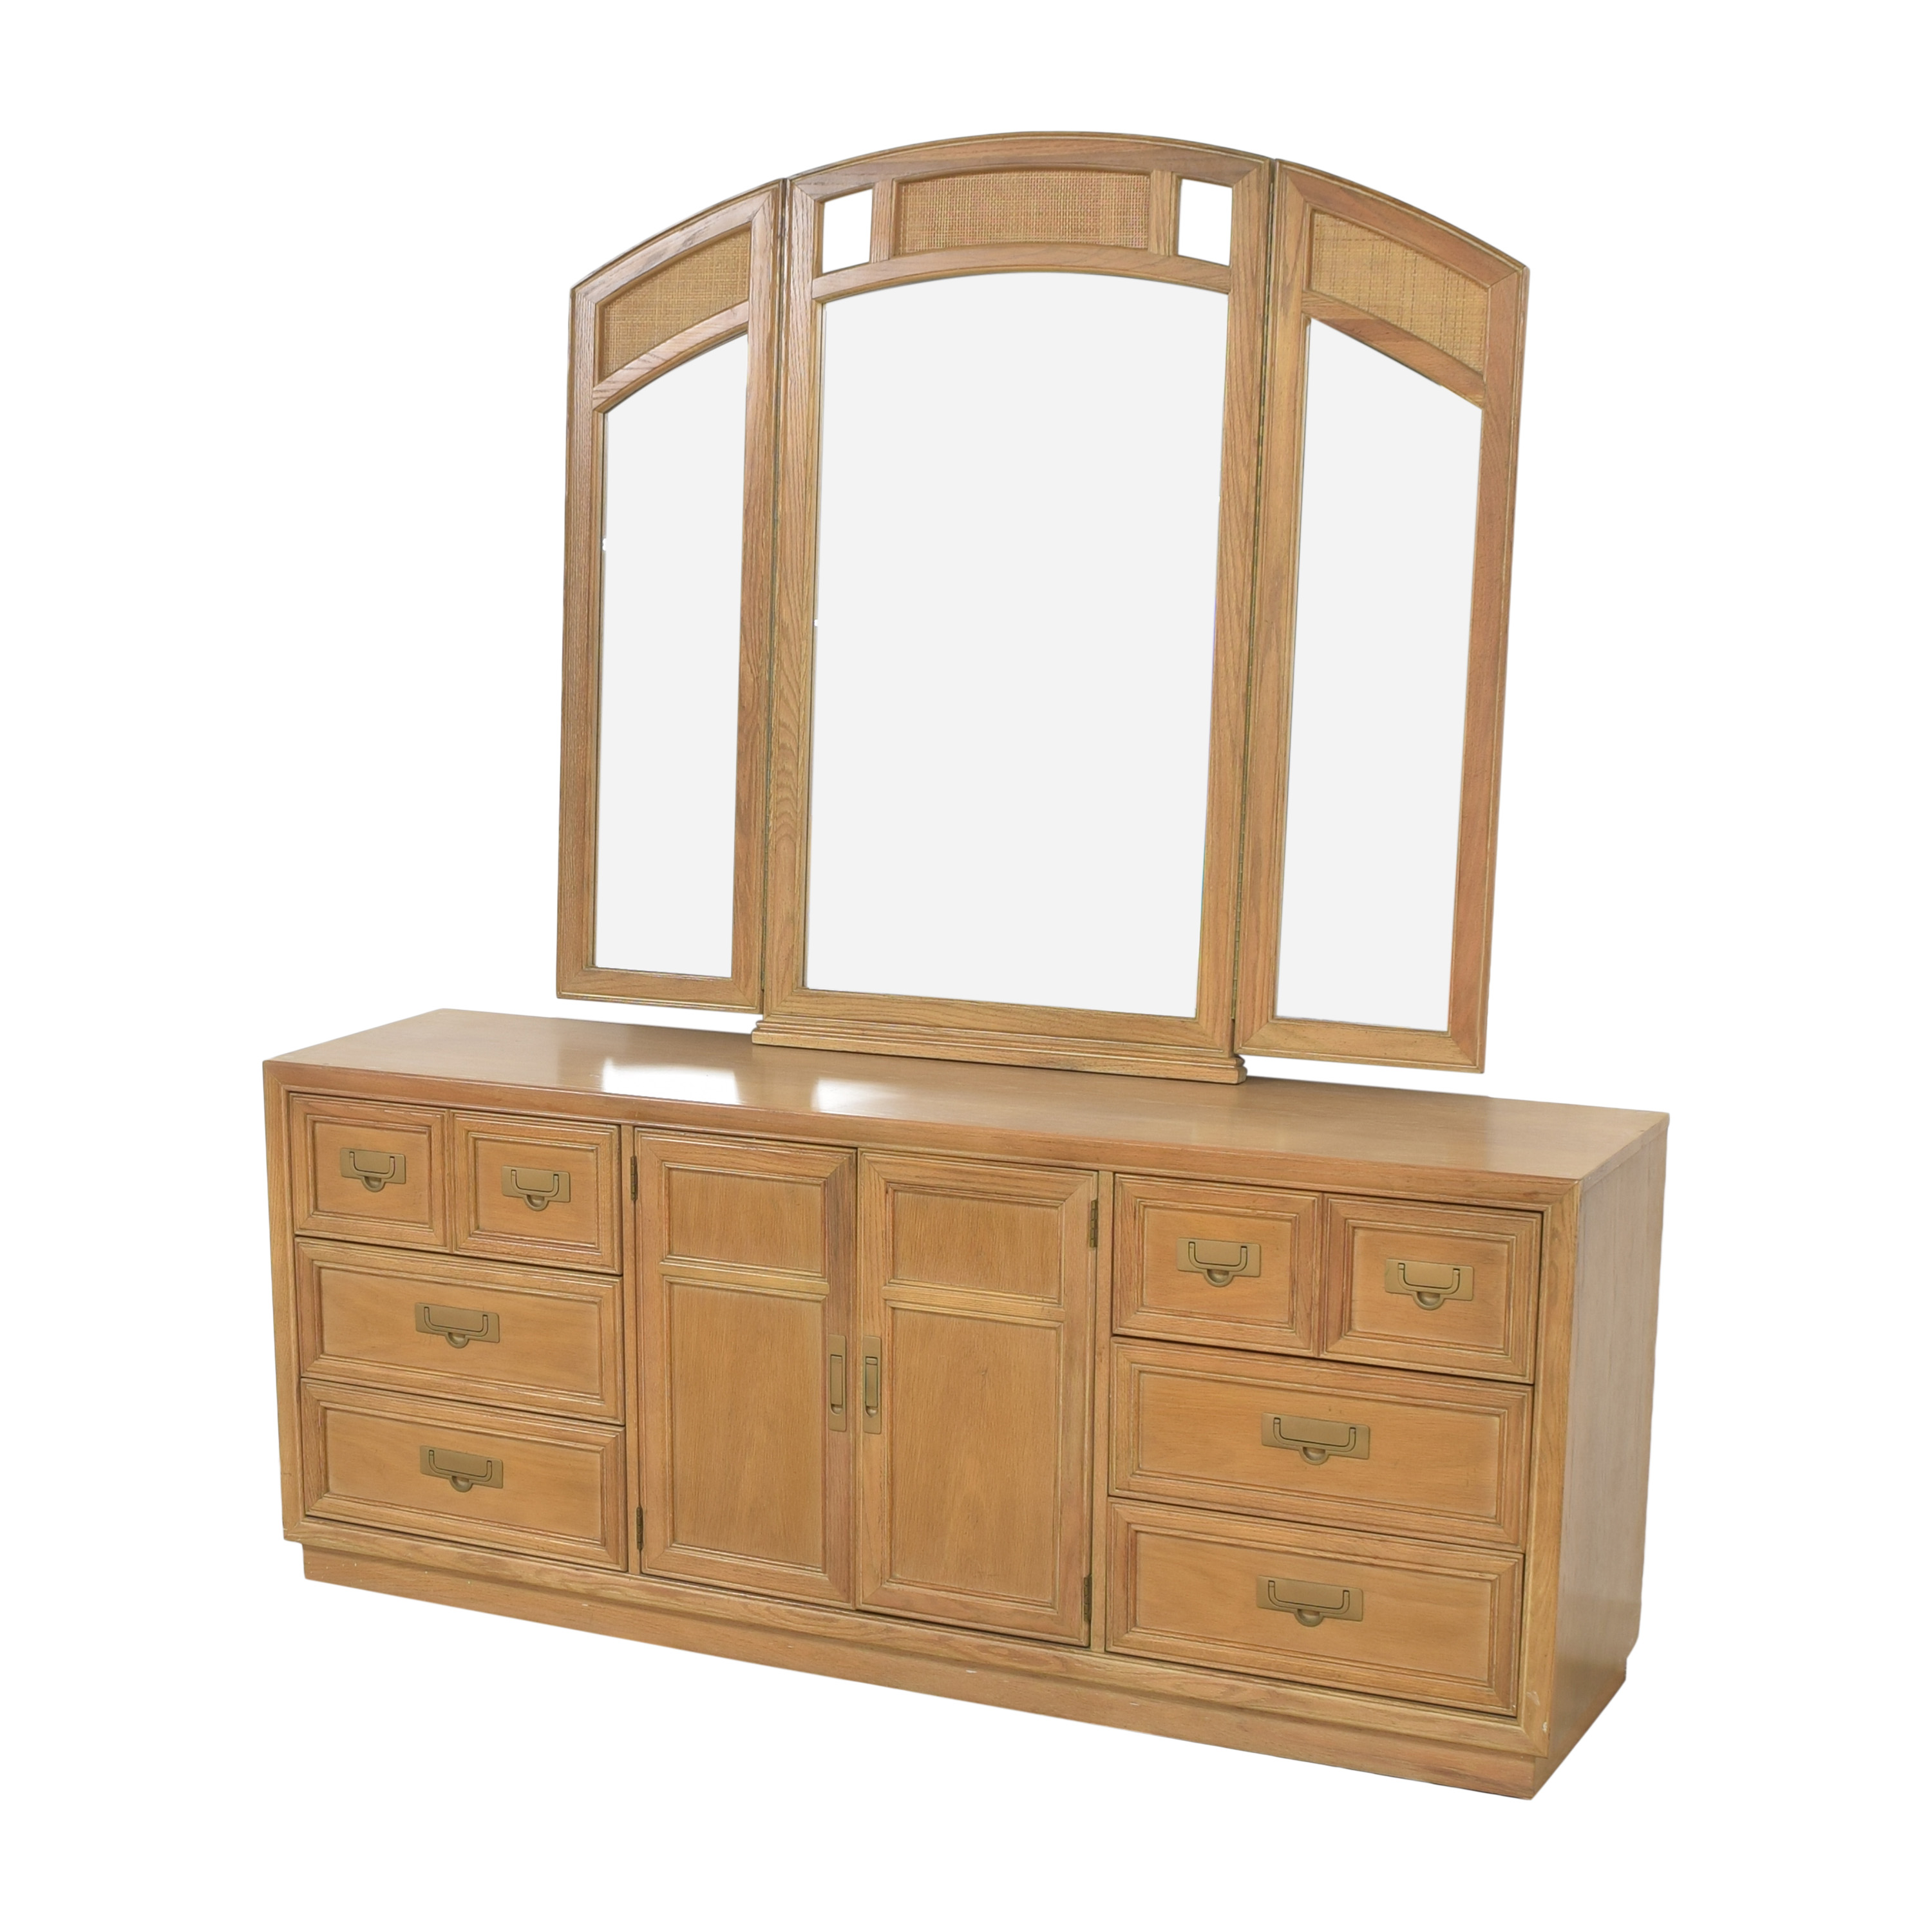 Stanley Furniture Stanley Furniture Nine Drawer Dresser with Mirror for sale